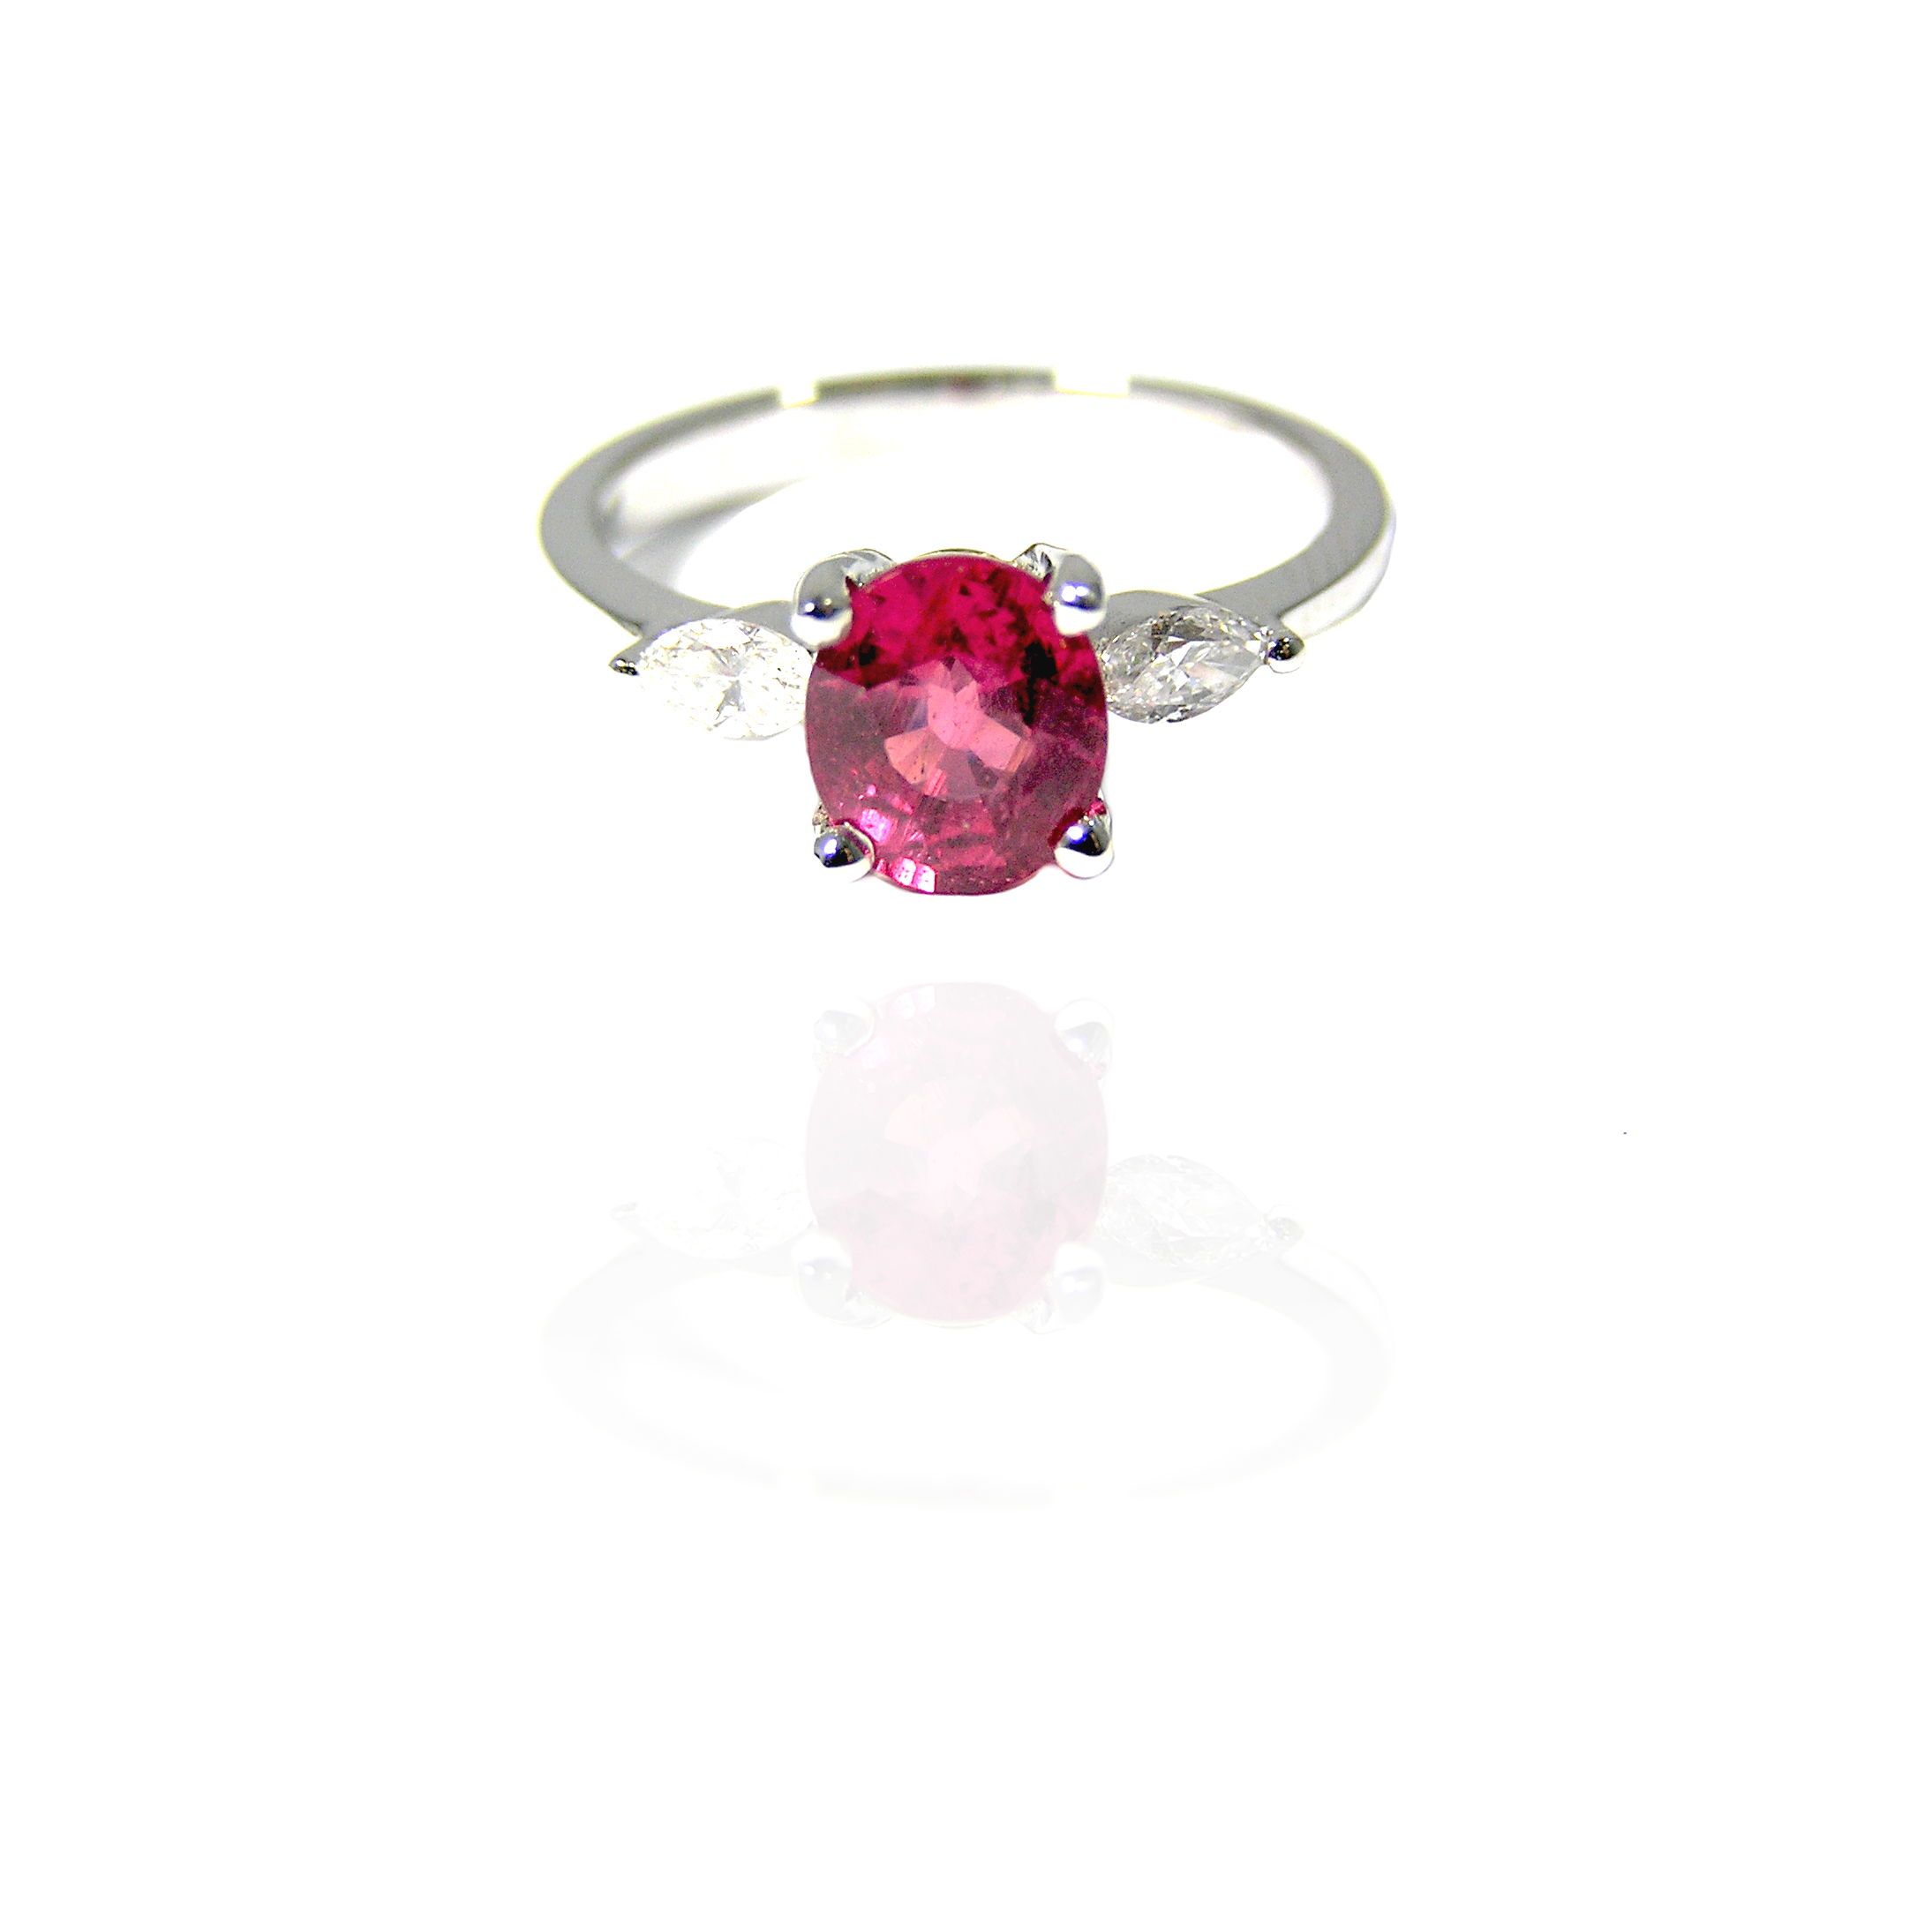 Ruby ring nestled between diamonds!